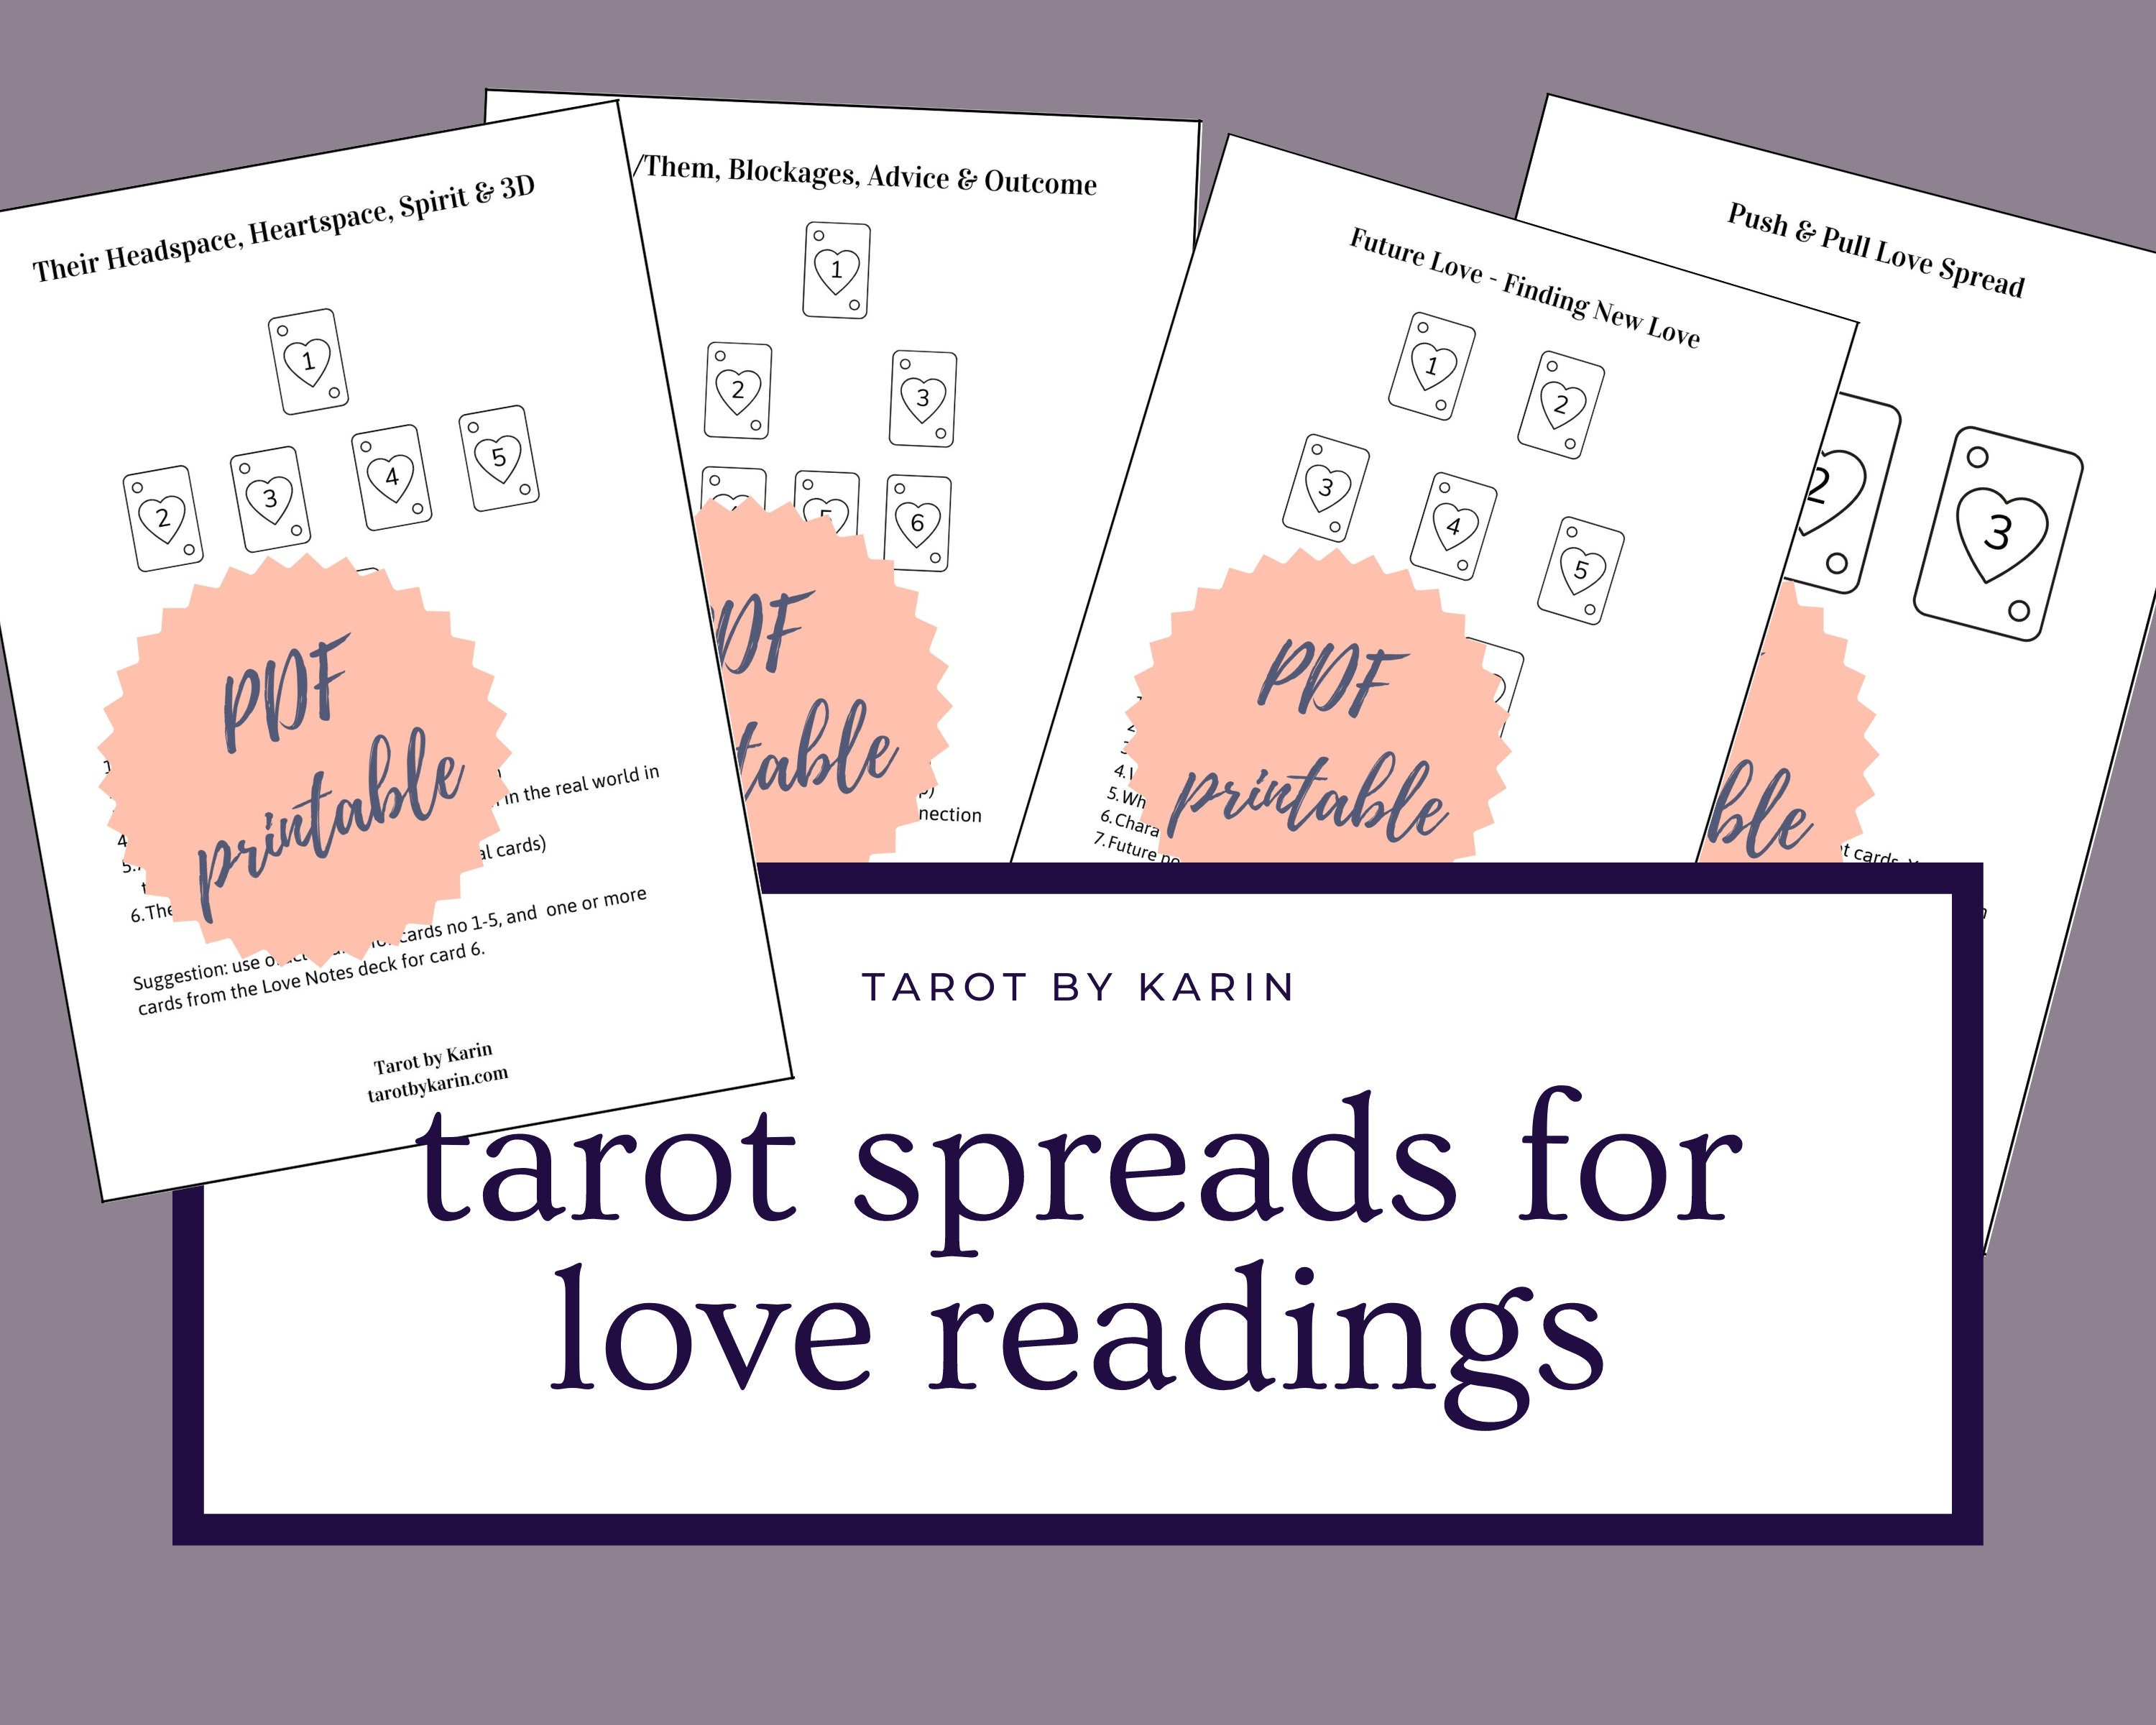 Love Spread Templates for Tarot & Oracle Card Readings   Tarot Reading  Templates for Beginners   A20 + US Letter Sized PDF Printable